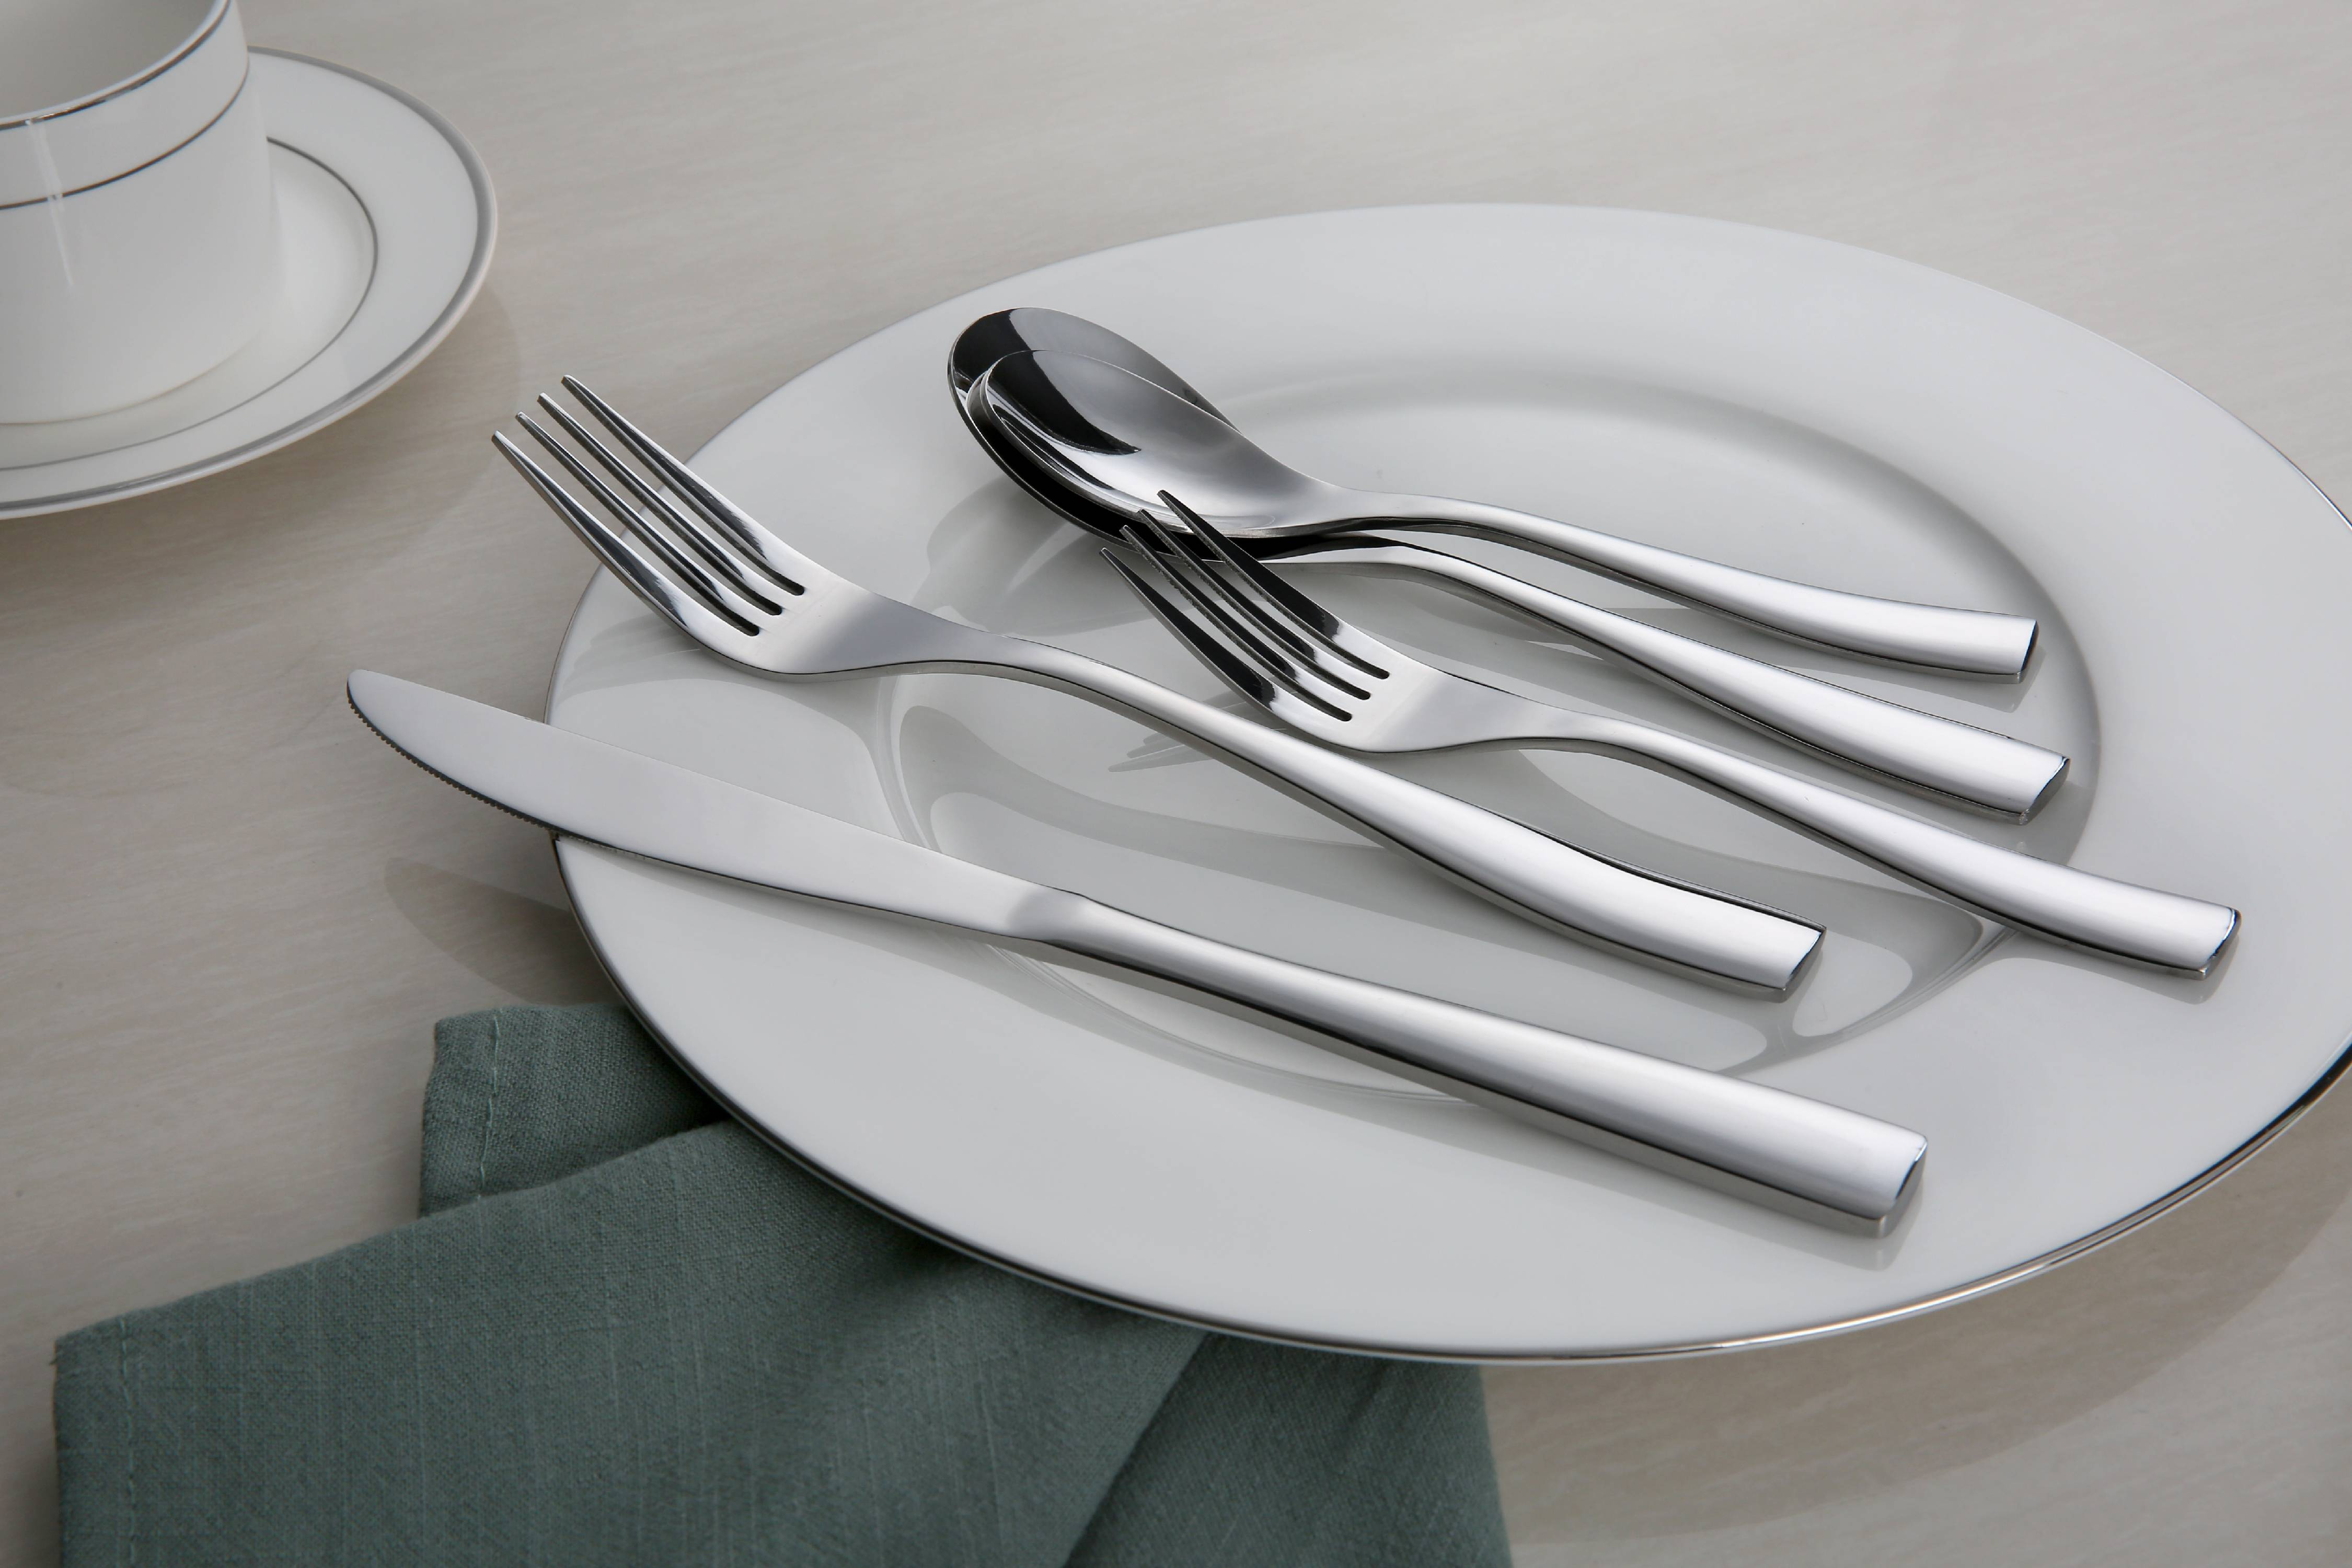 Better Homes & Garden Cornwall 20 Piece Flatware Set by Wal-Mart Stores, Inc.